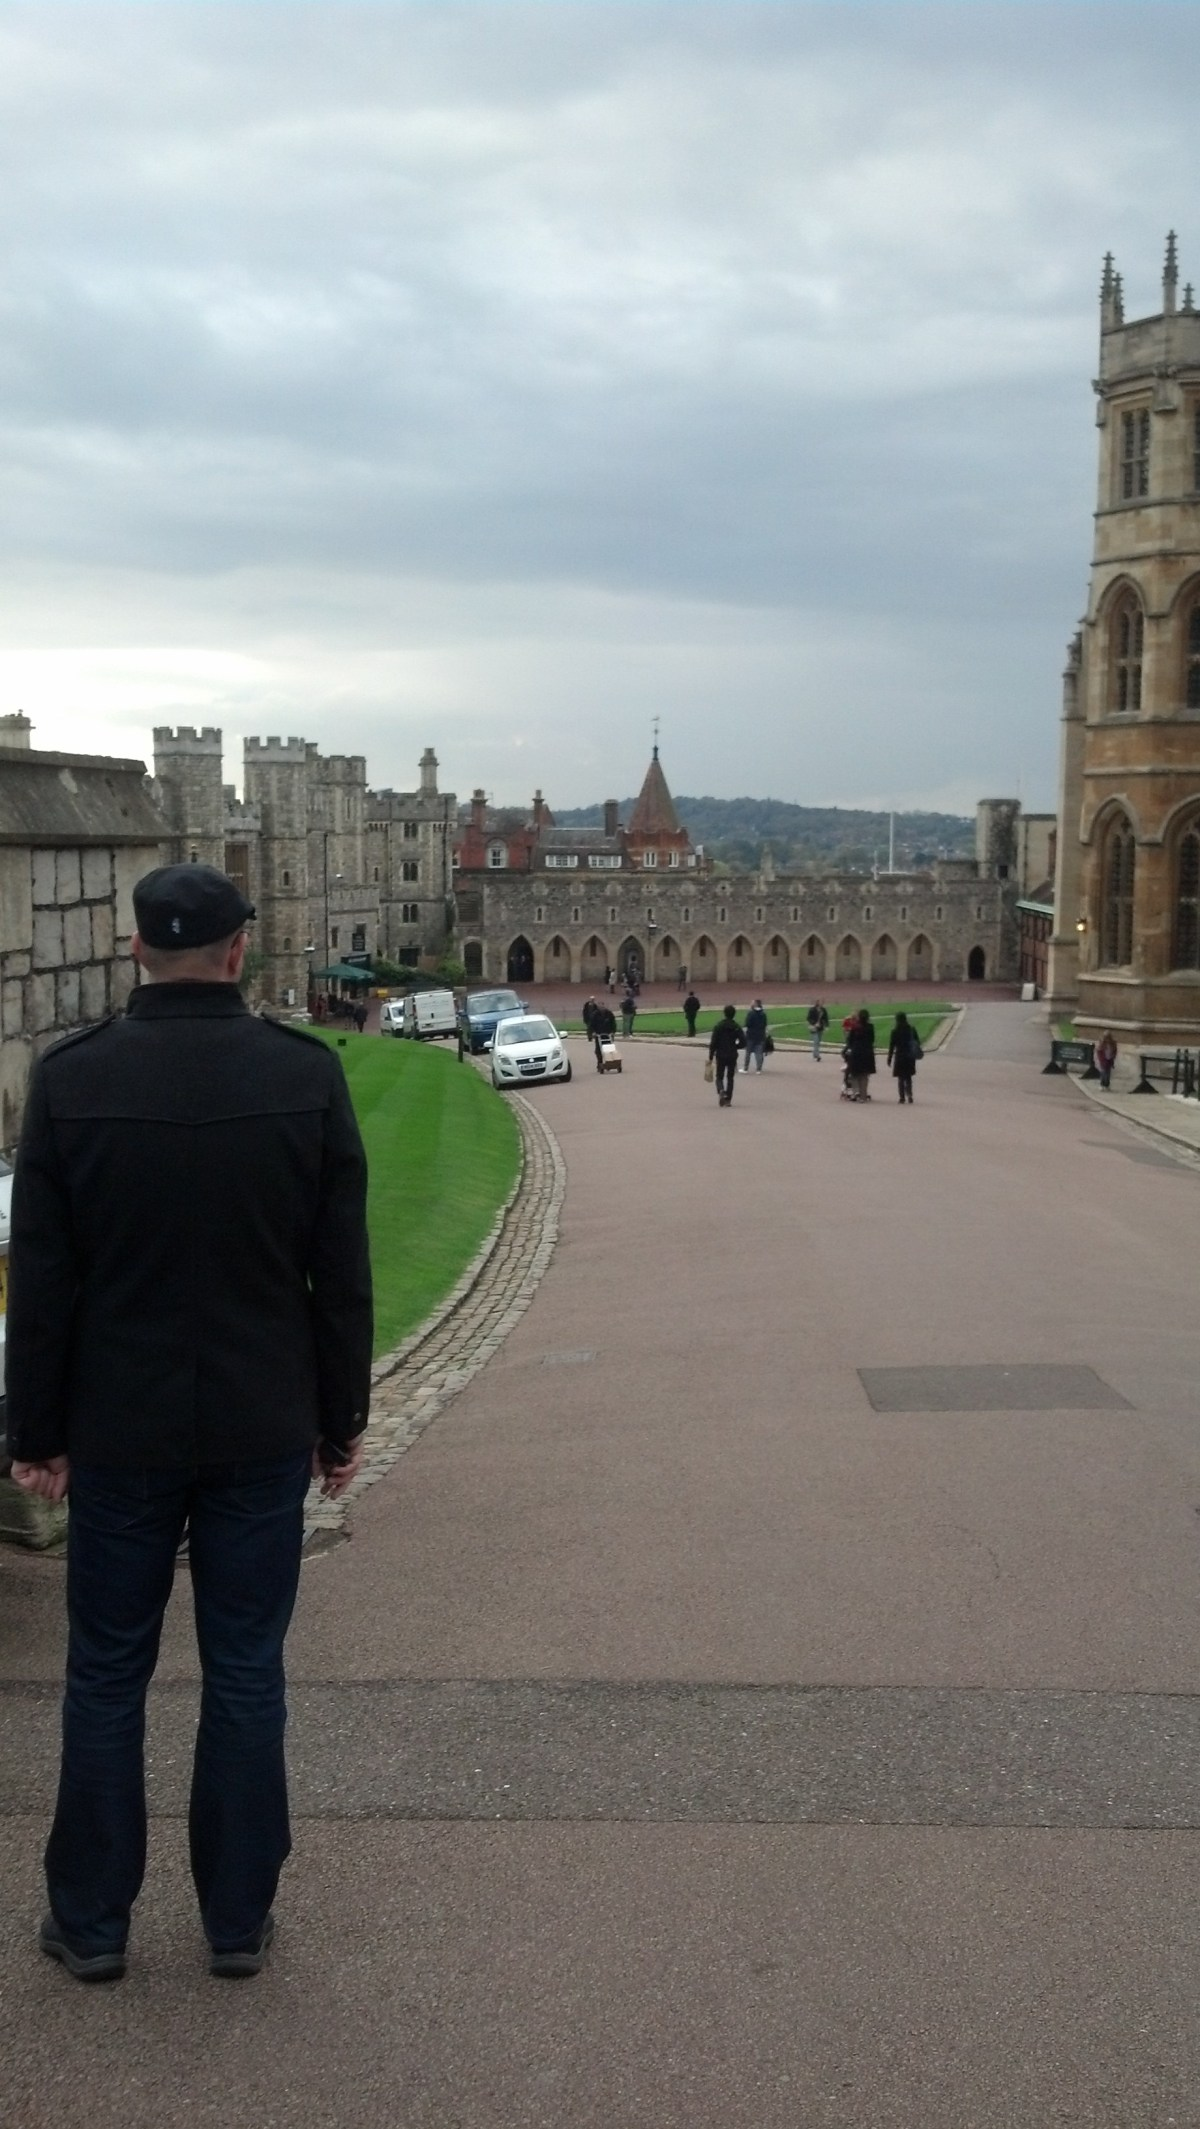 Windsor Castle and St. George's Cathedral, London: Photo Gallery